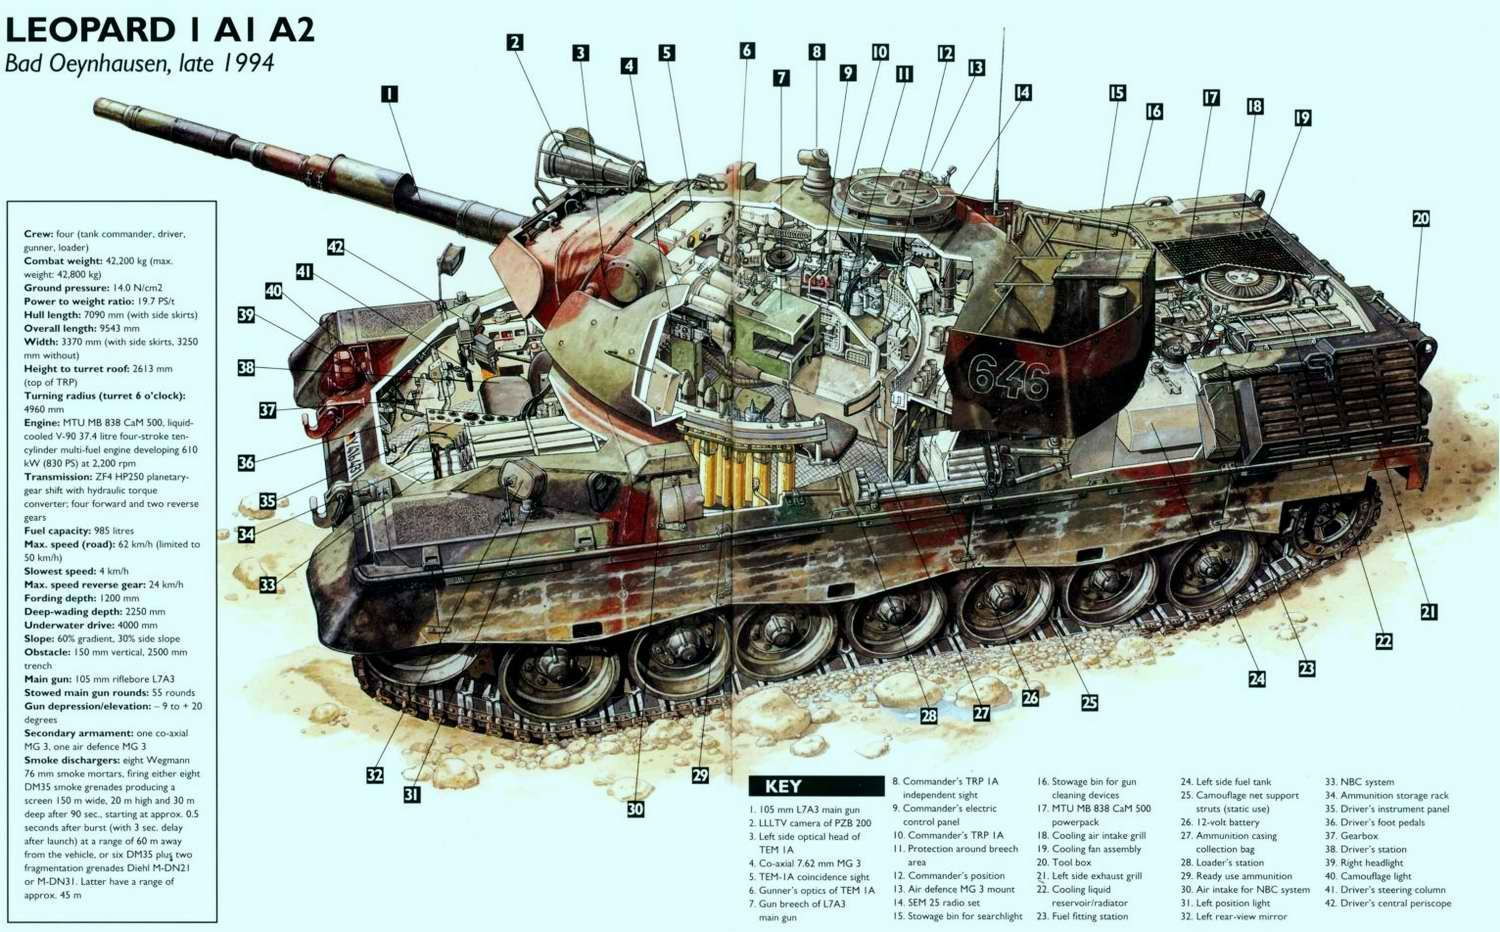 ww1 tank diagram 2001 mitsubishi eclipse alternator wiring of a leopard 1 mbt by peter sarson military